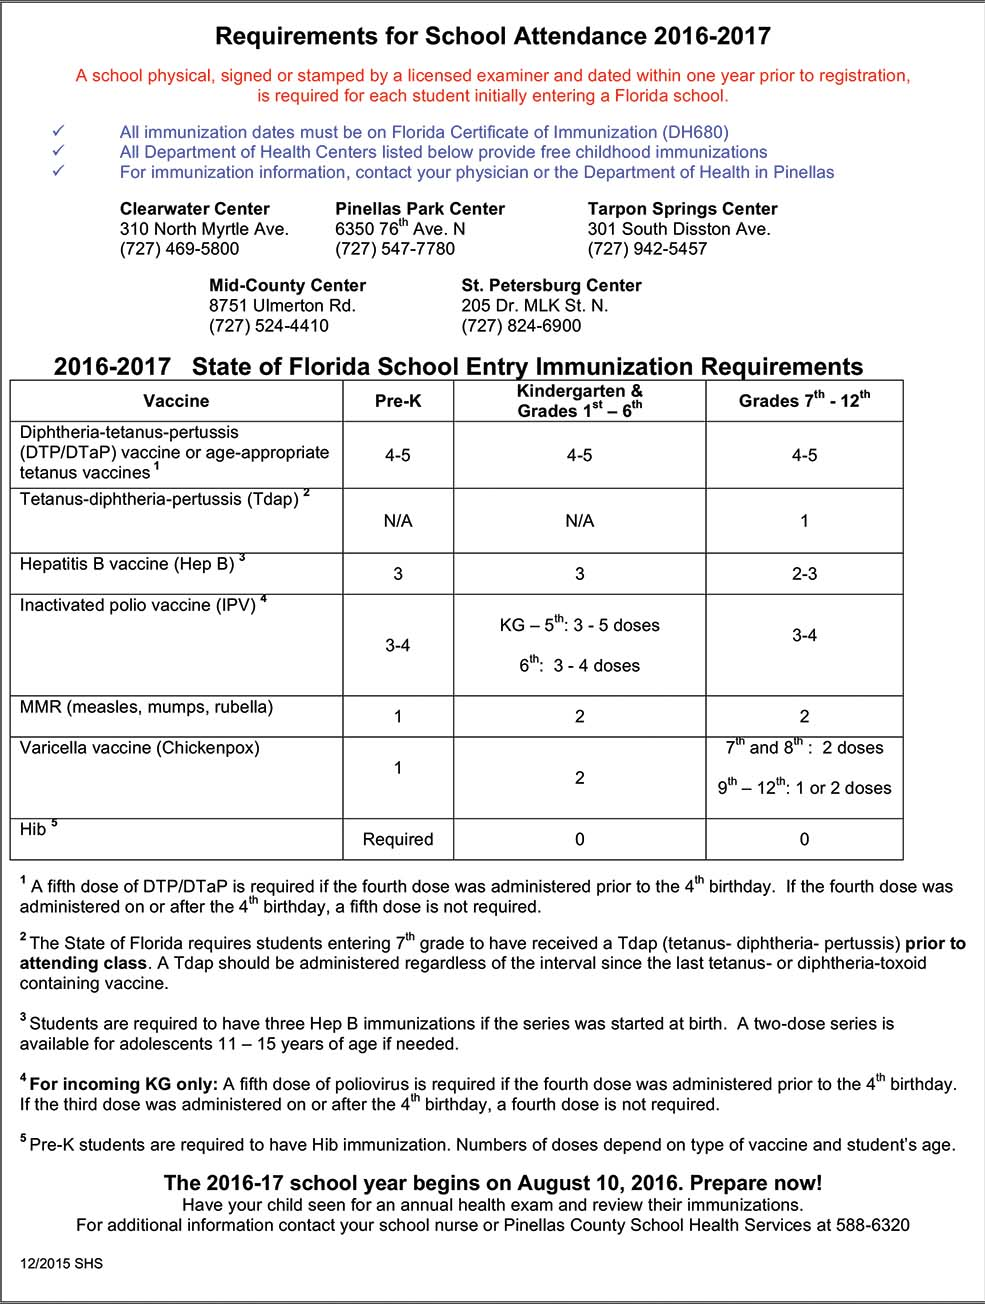 School Requirements 2016-2017 flyer